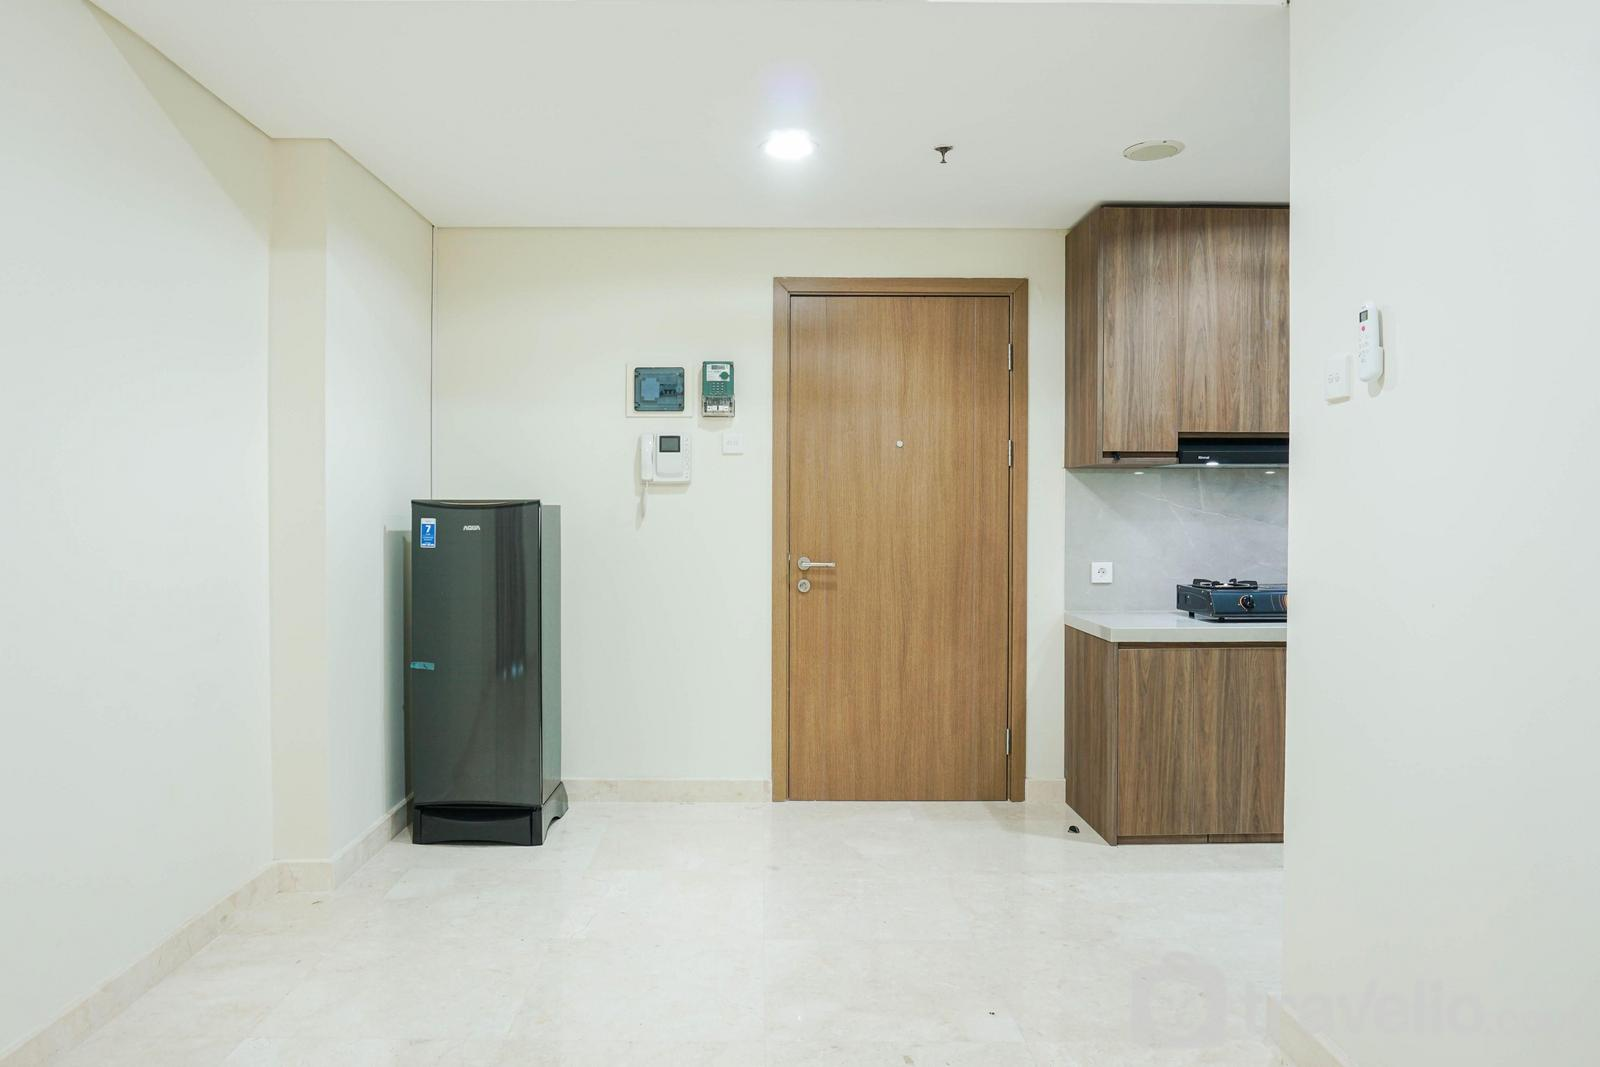 Apartemen Puri Orchard - 2BR Unfurnished 30th Floor @ Puri Orchard Apartment with AC & Kitchen Set By Travelio